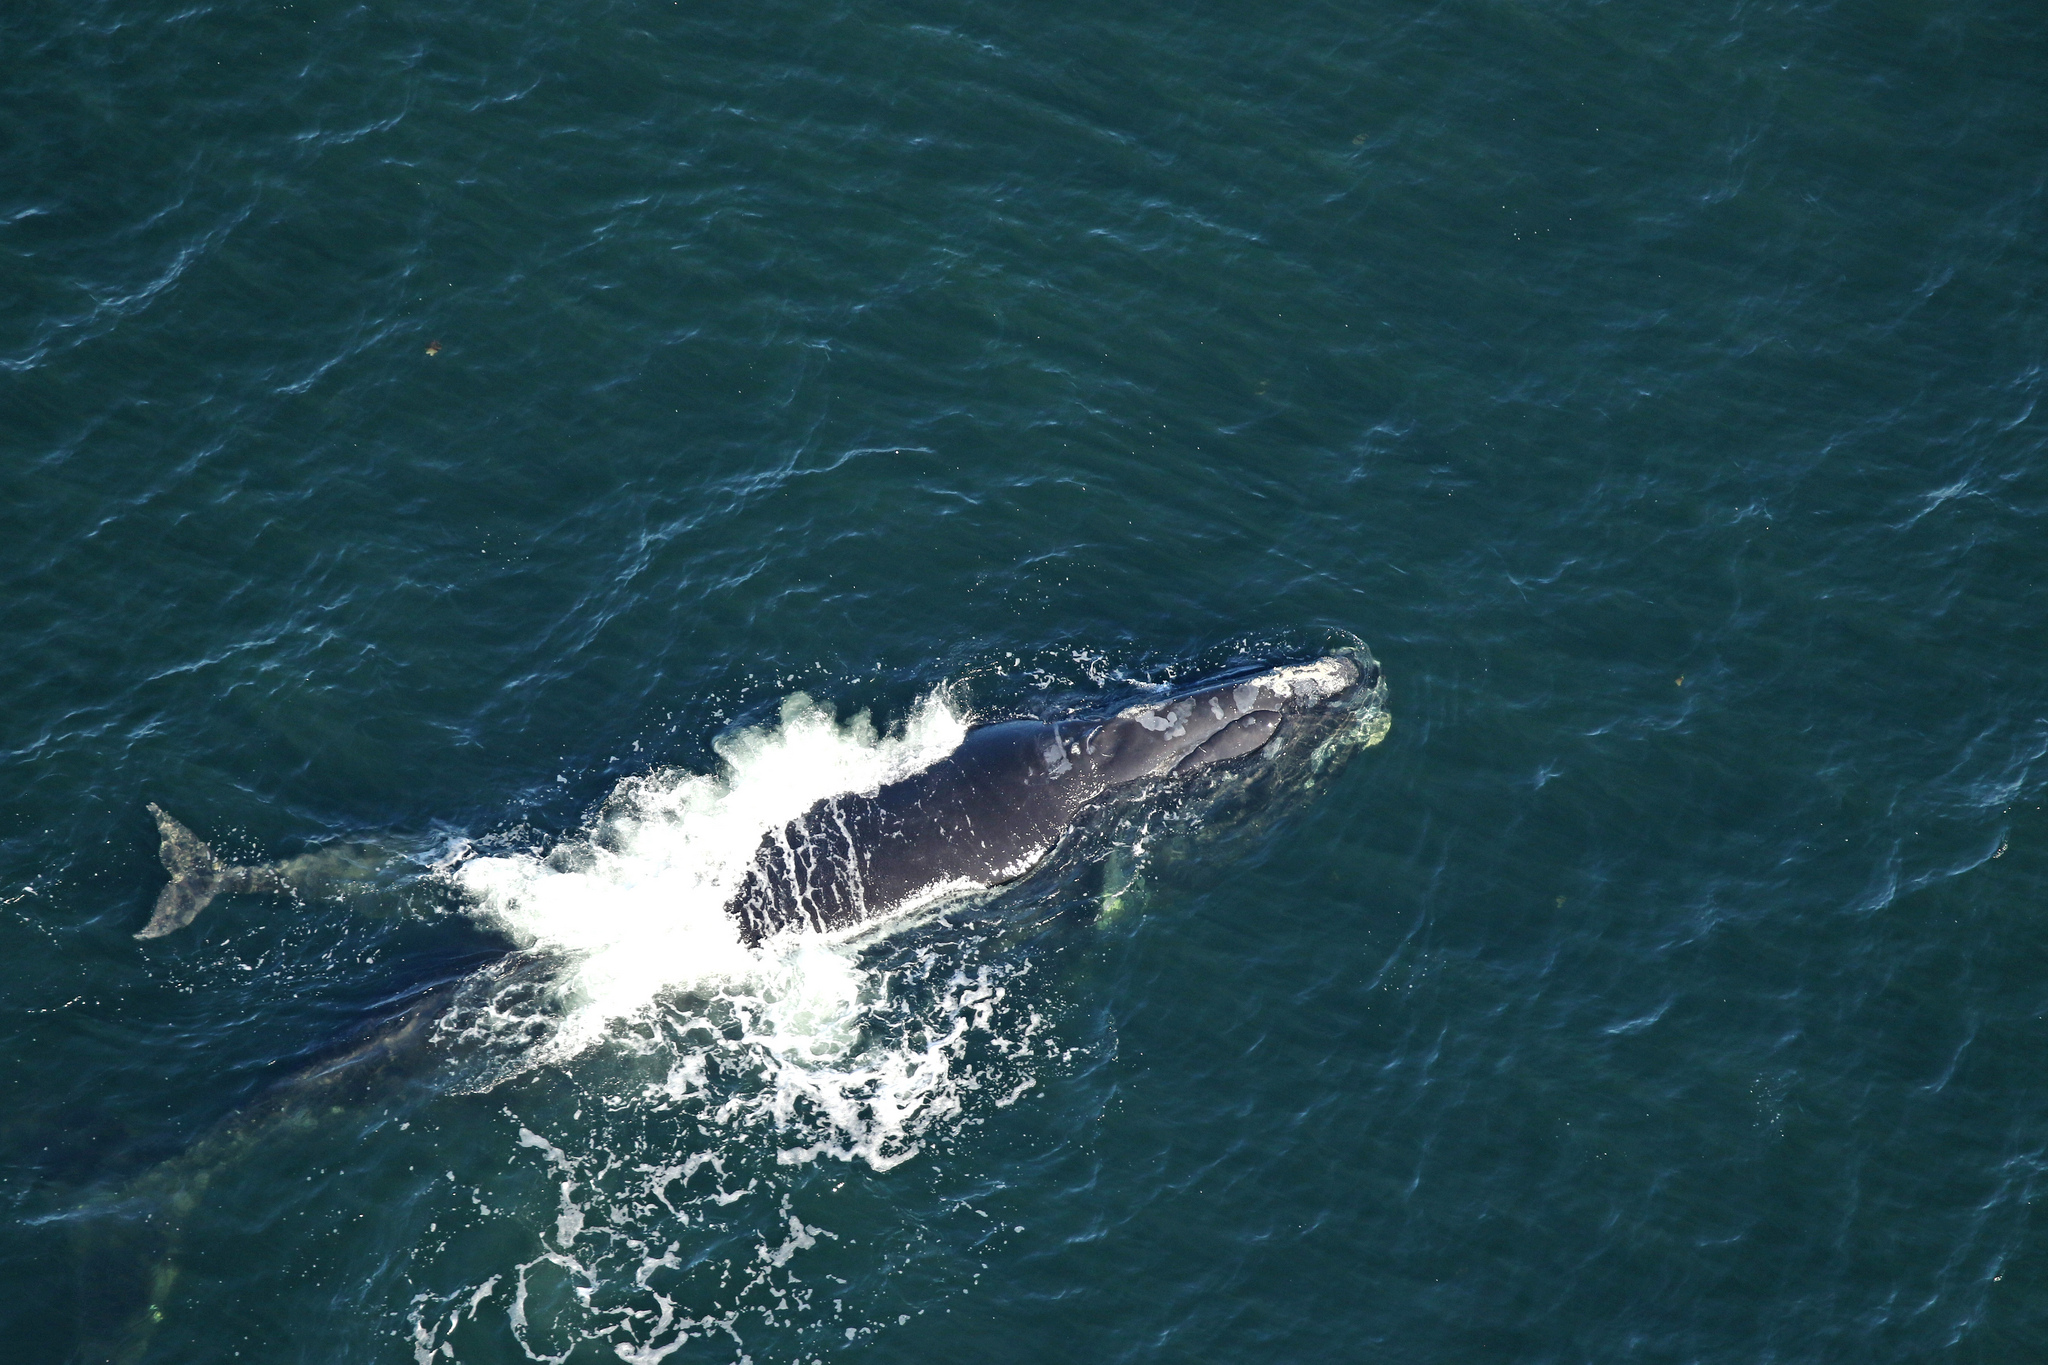 north atlantic right whale number 2503, known as boomerang, swims with her calf off the coast of georgia on january 25, 2019